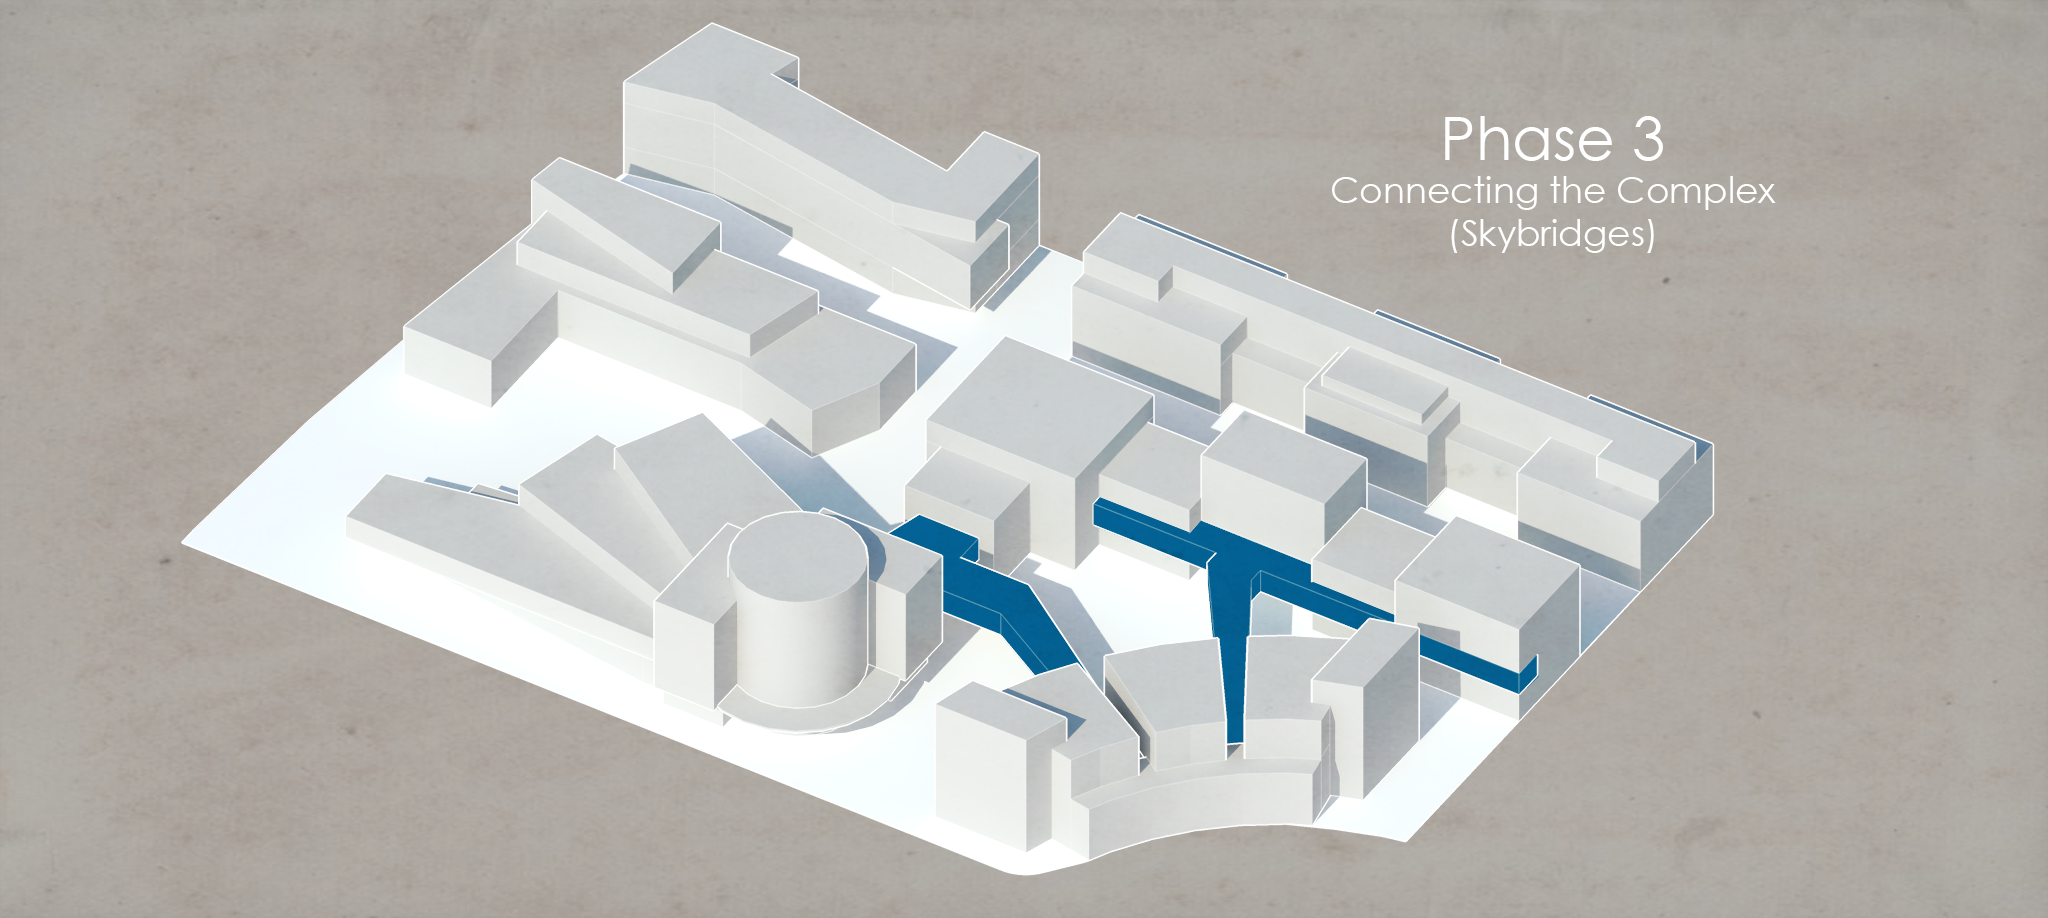 Phase 3 - Connecting the Complex